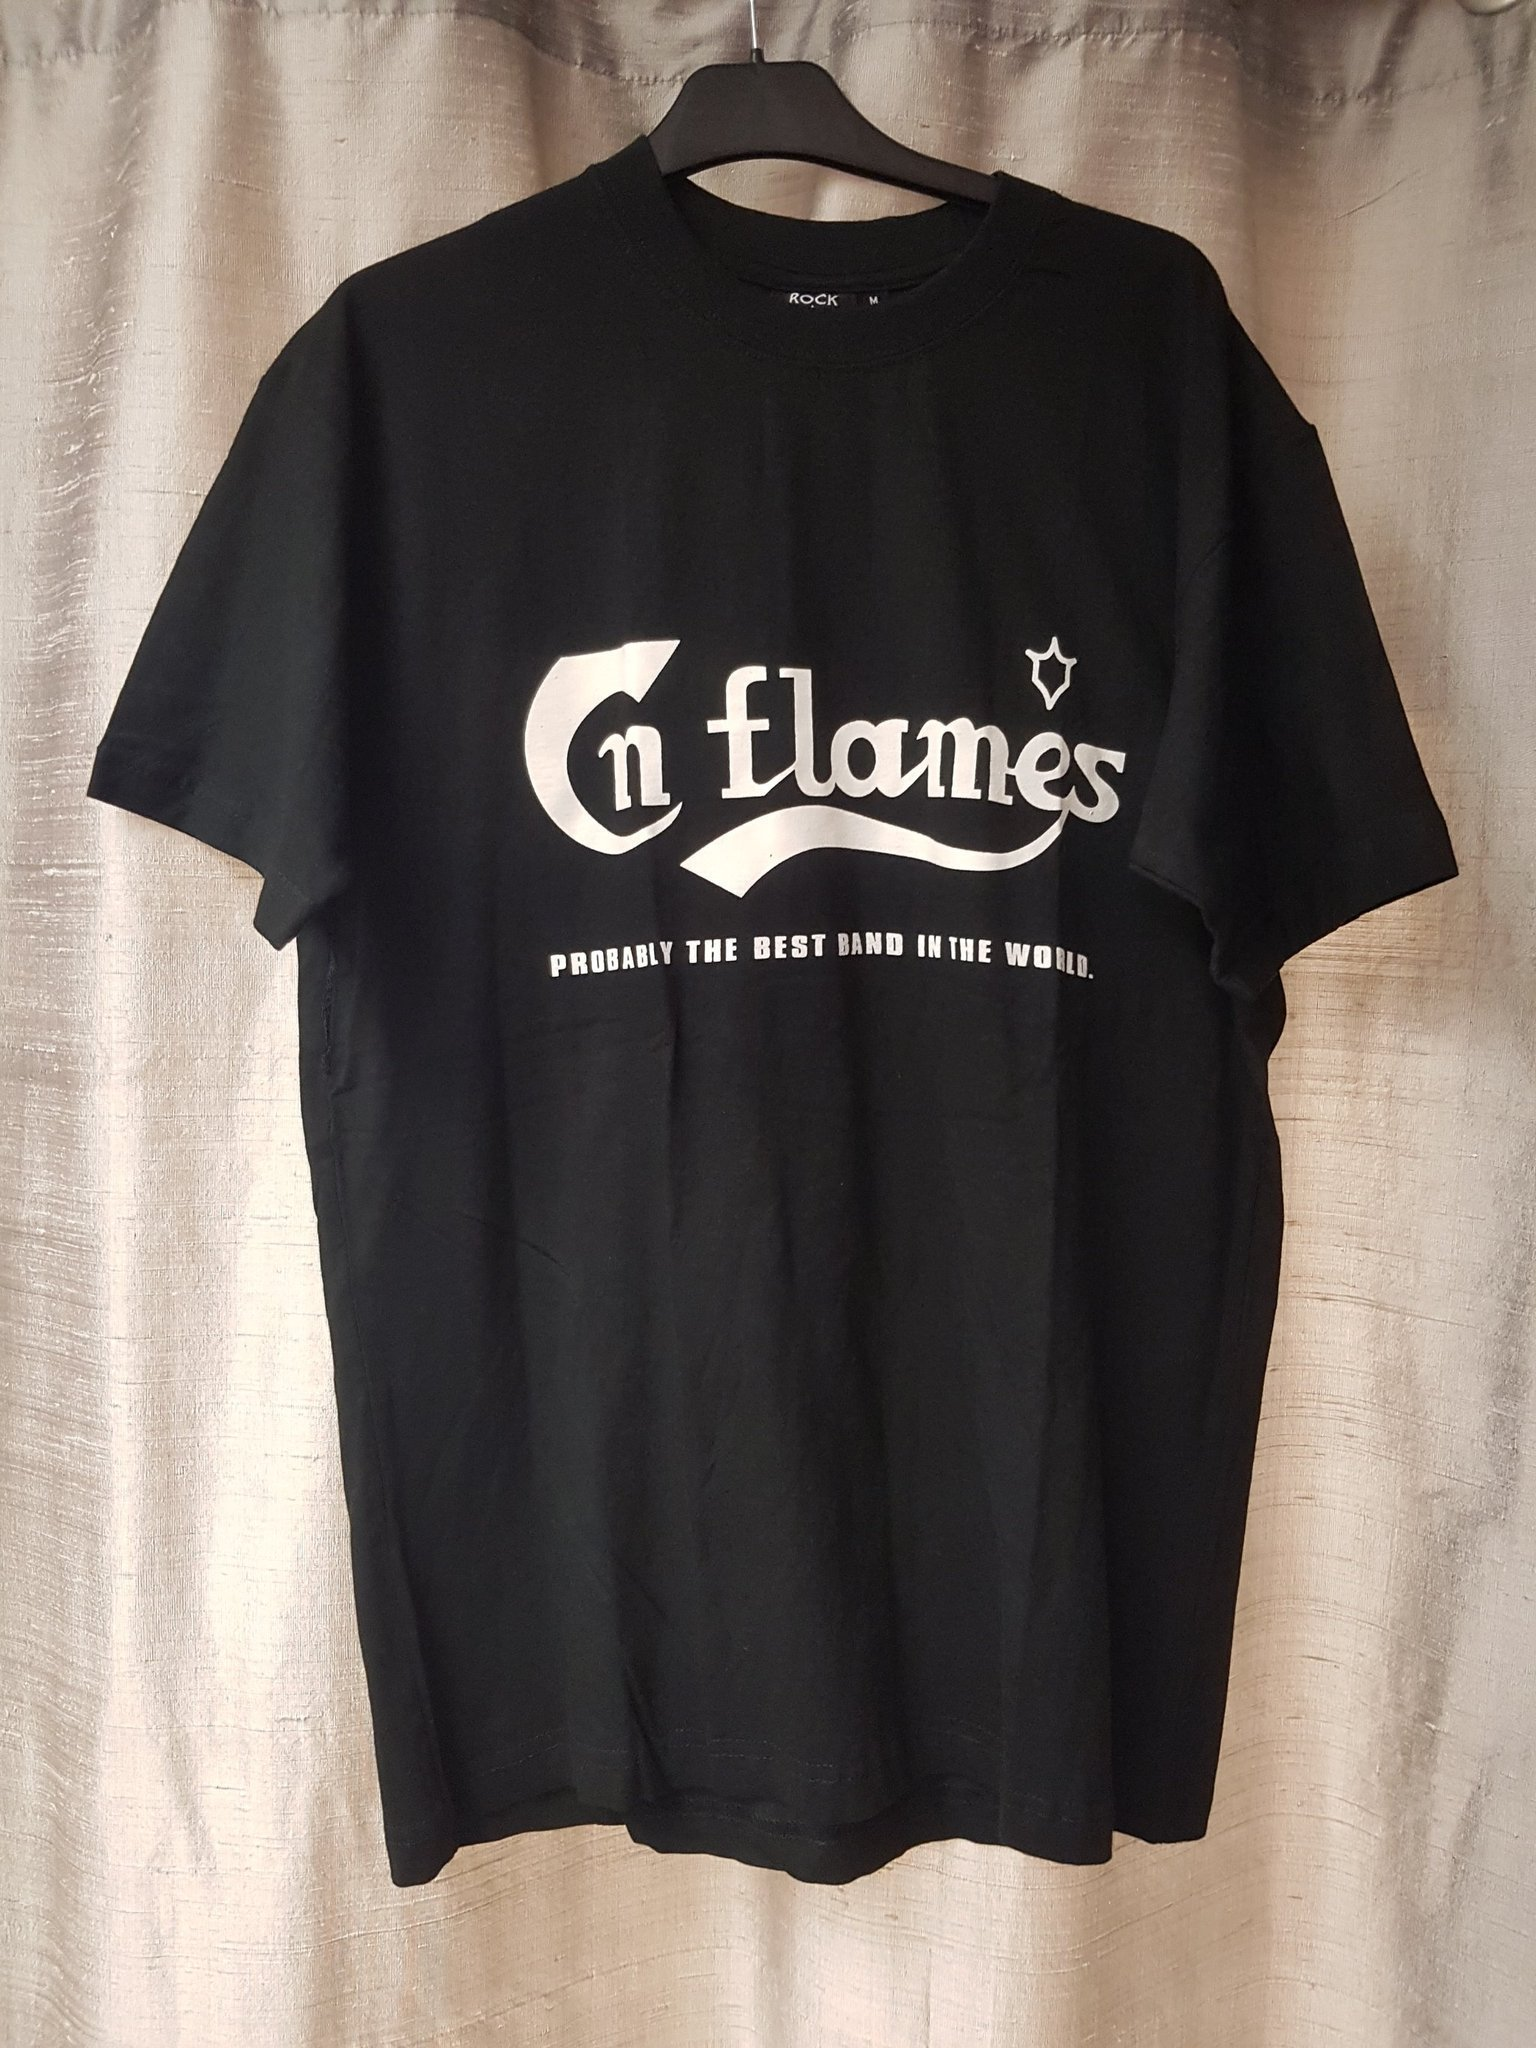 T-SHIRT IN FLAMES STL XS